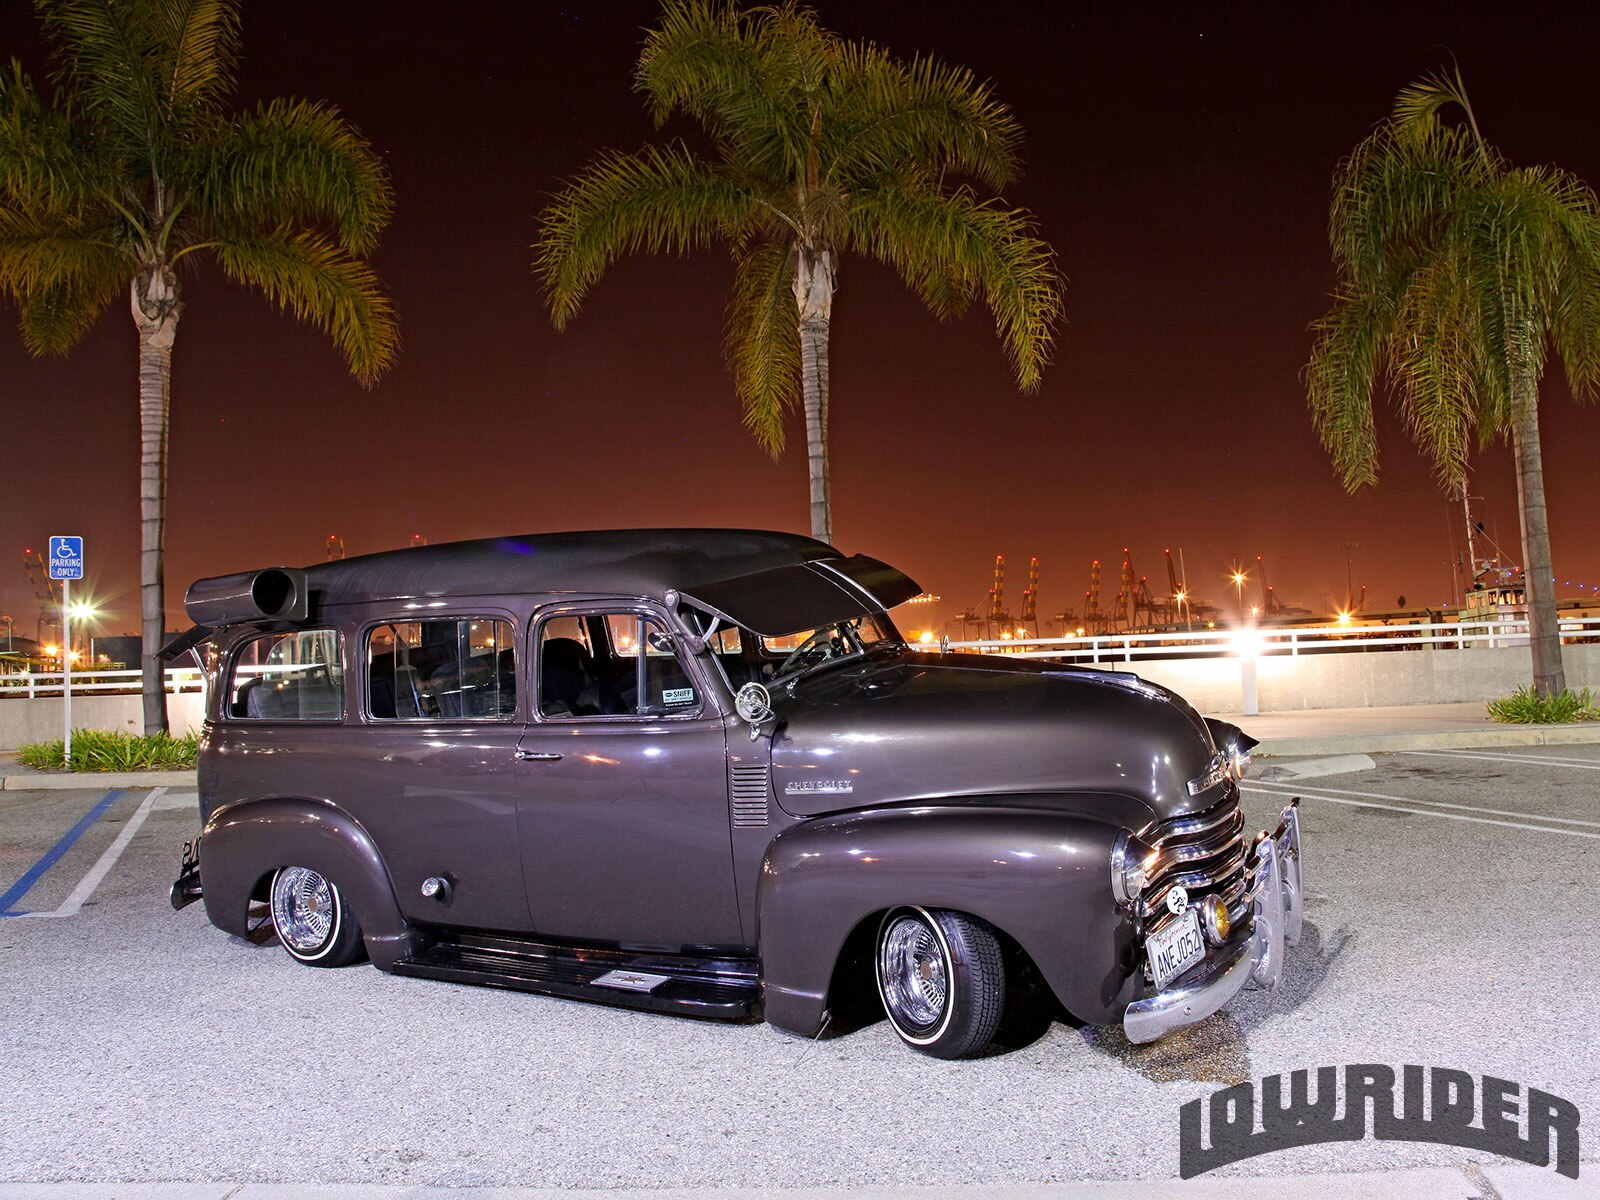 1952-chevrolet-suburban-front-right-view1